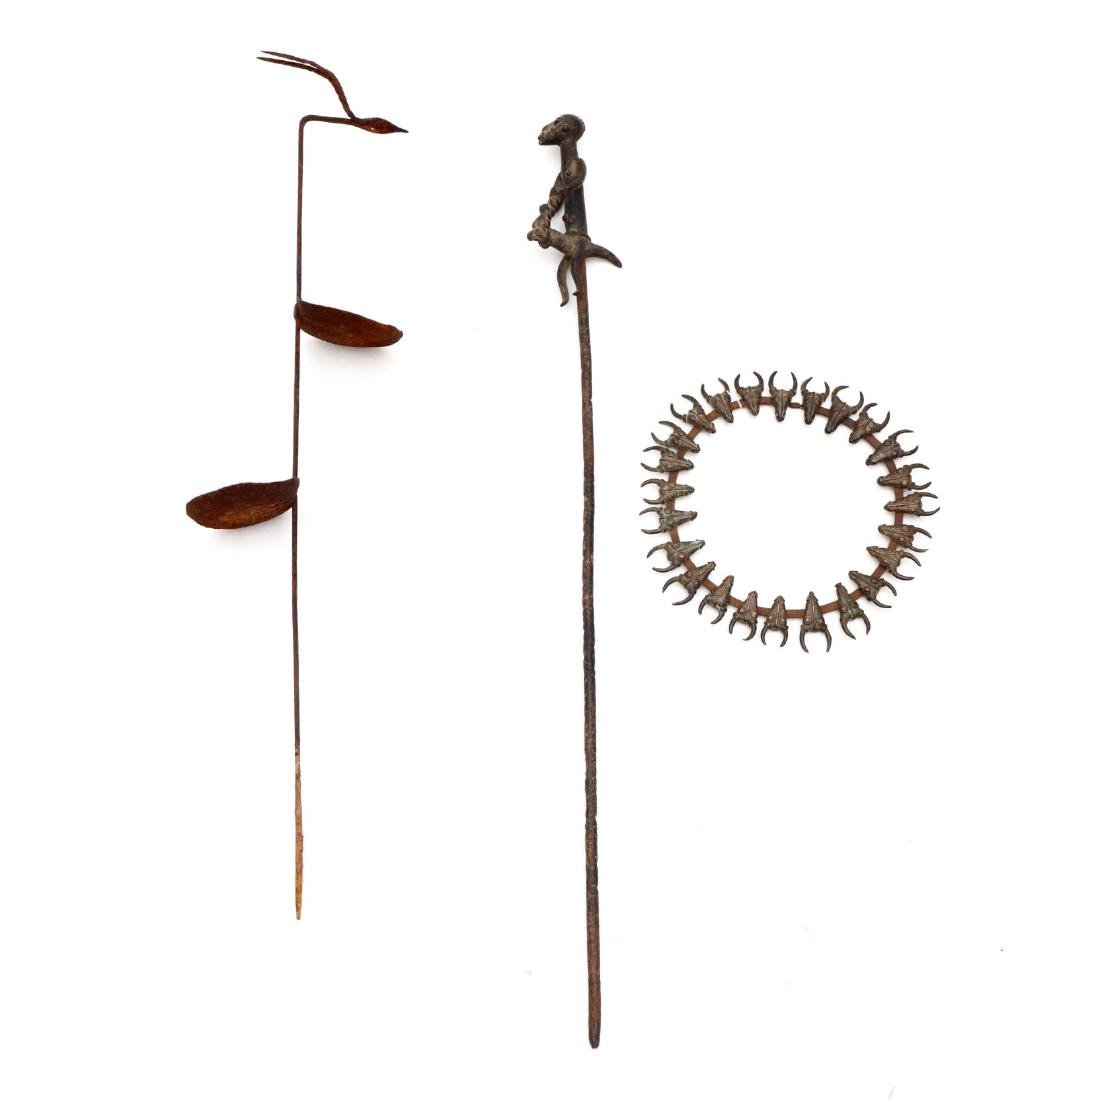 Three African Metal Objects